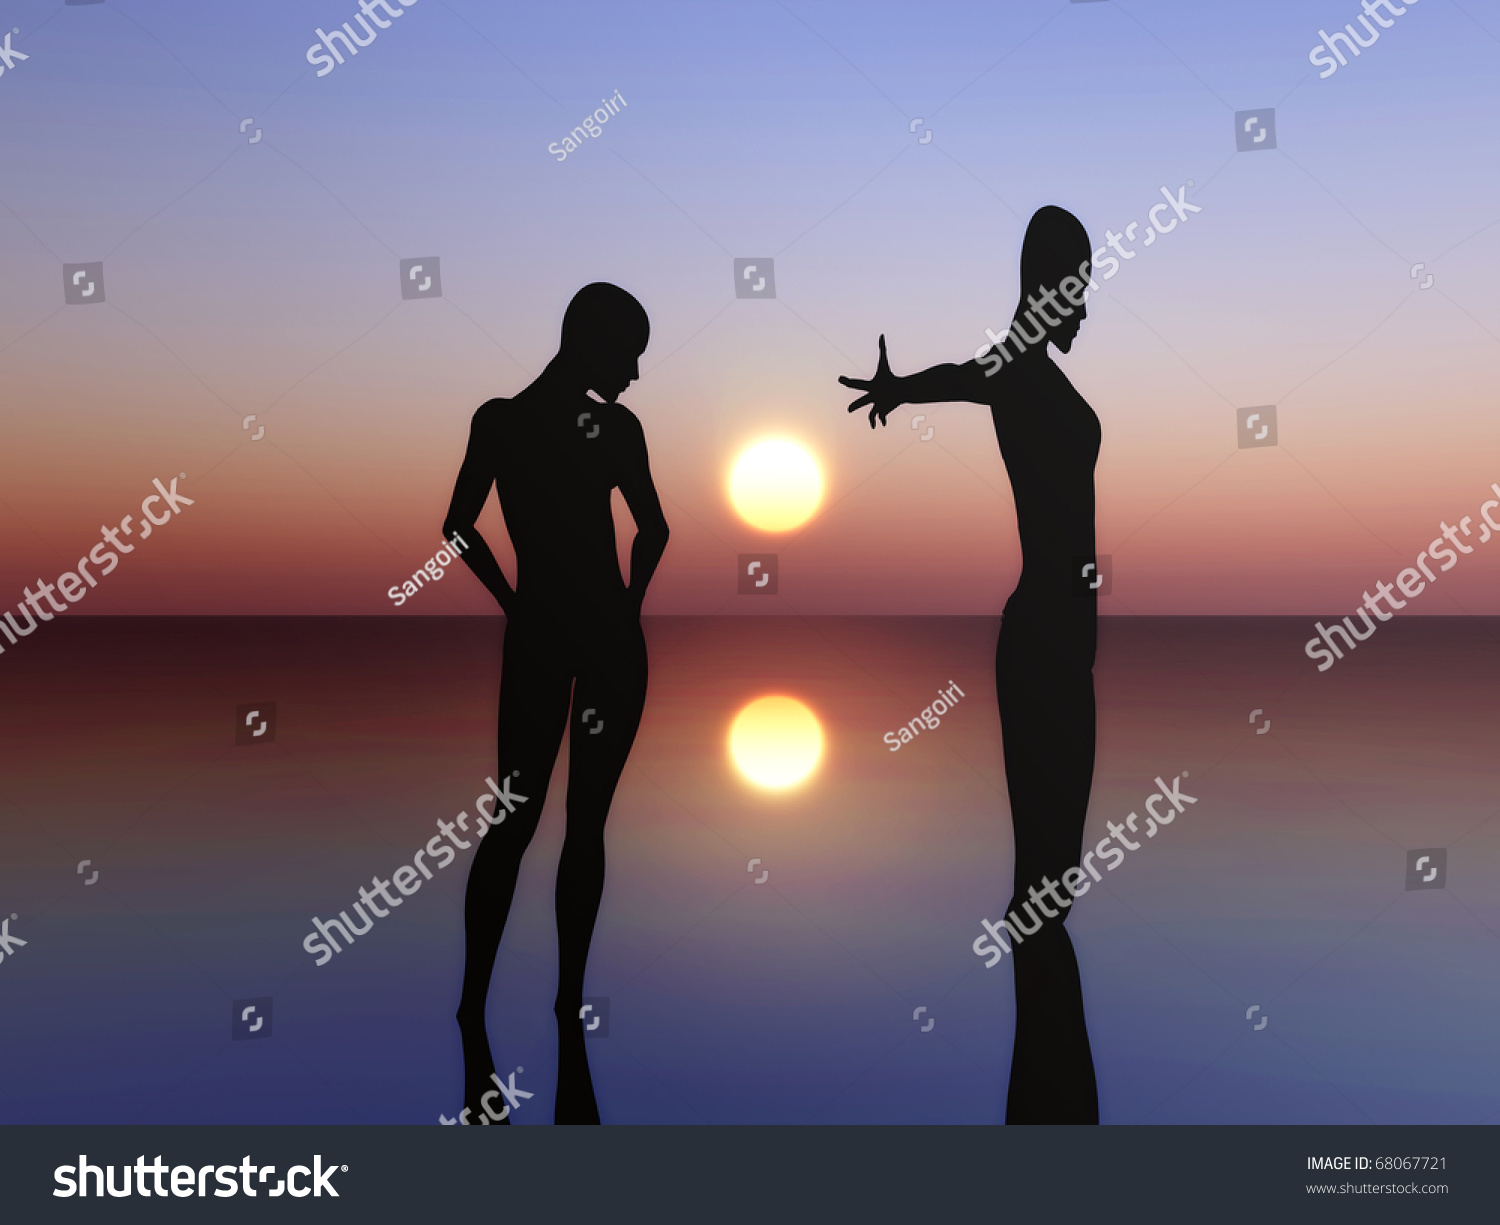 Two people expressing their feeling symbol stock illustration two people expressing their feeling a symbol for friendship emotions feelings as well buycottarizona Choice Image